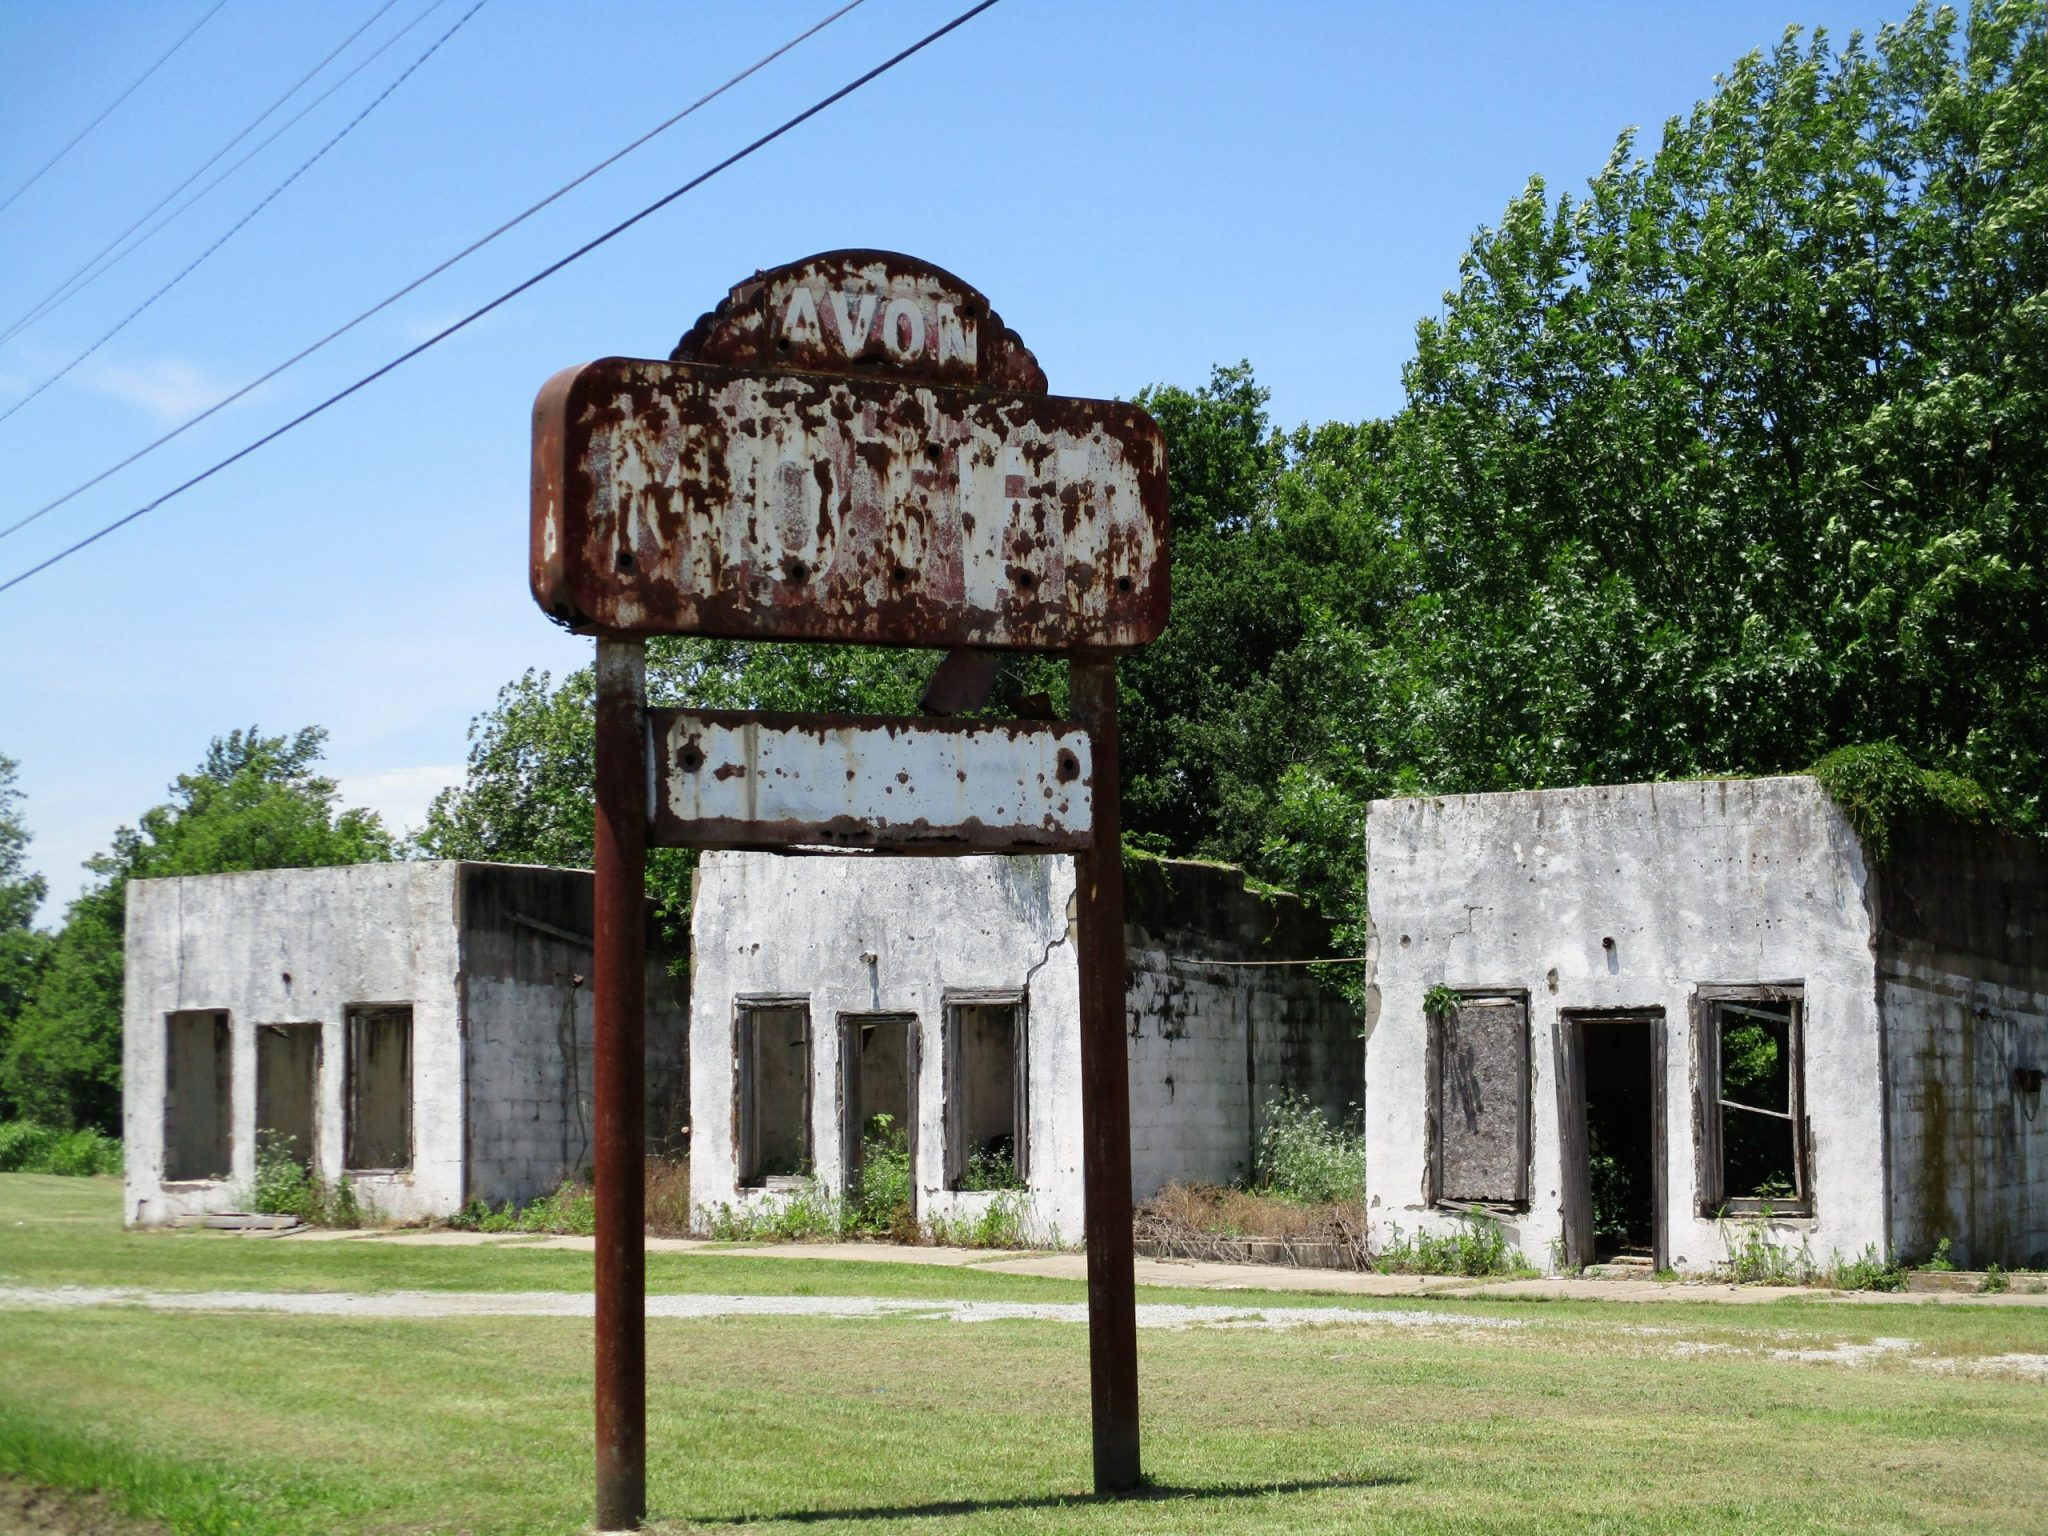 A photo of empty cabins